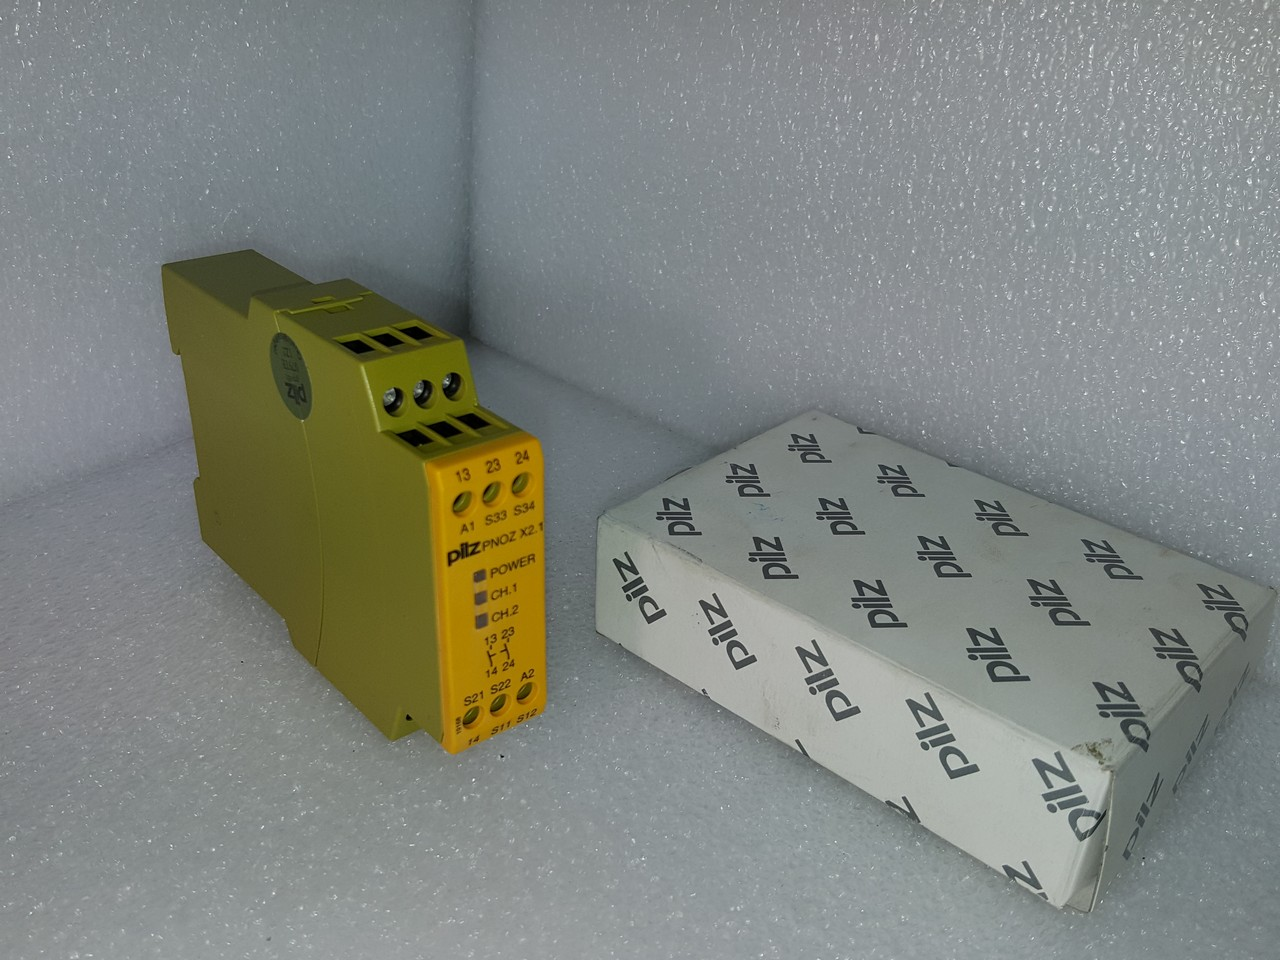 Graphic Web Parts Pnoz X21 Ident Nr774306 Pilz Safety Relay Wiring A For Man Colorman